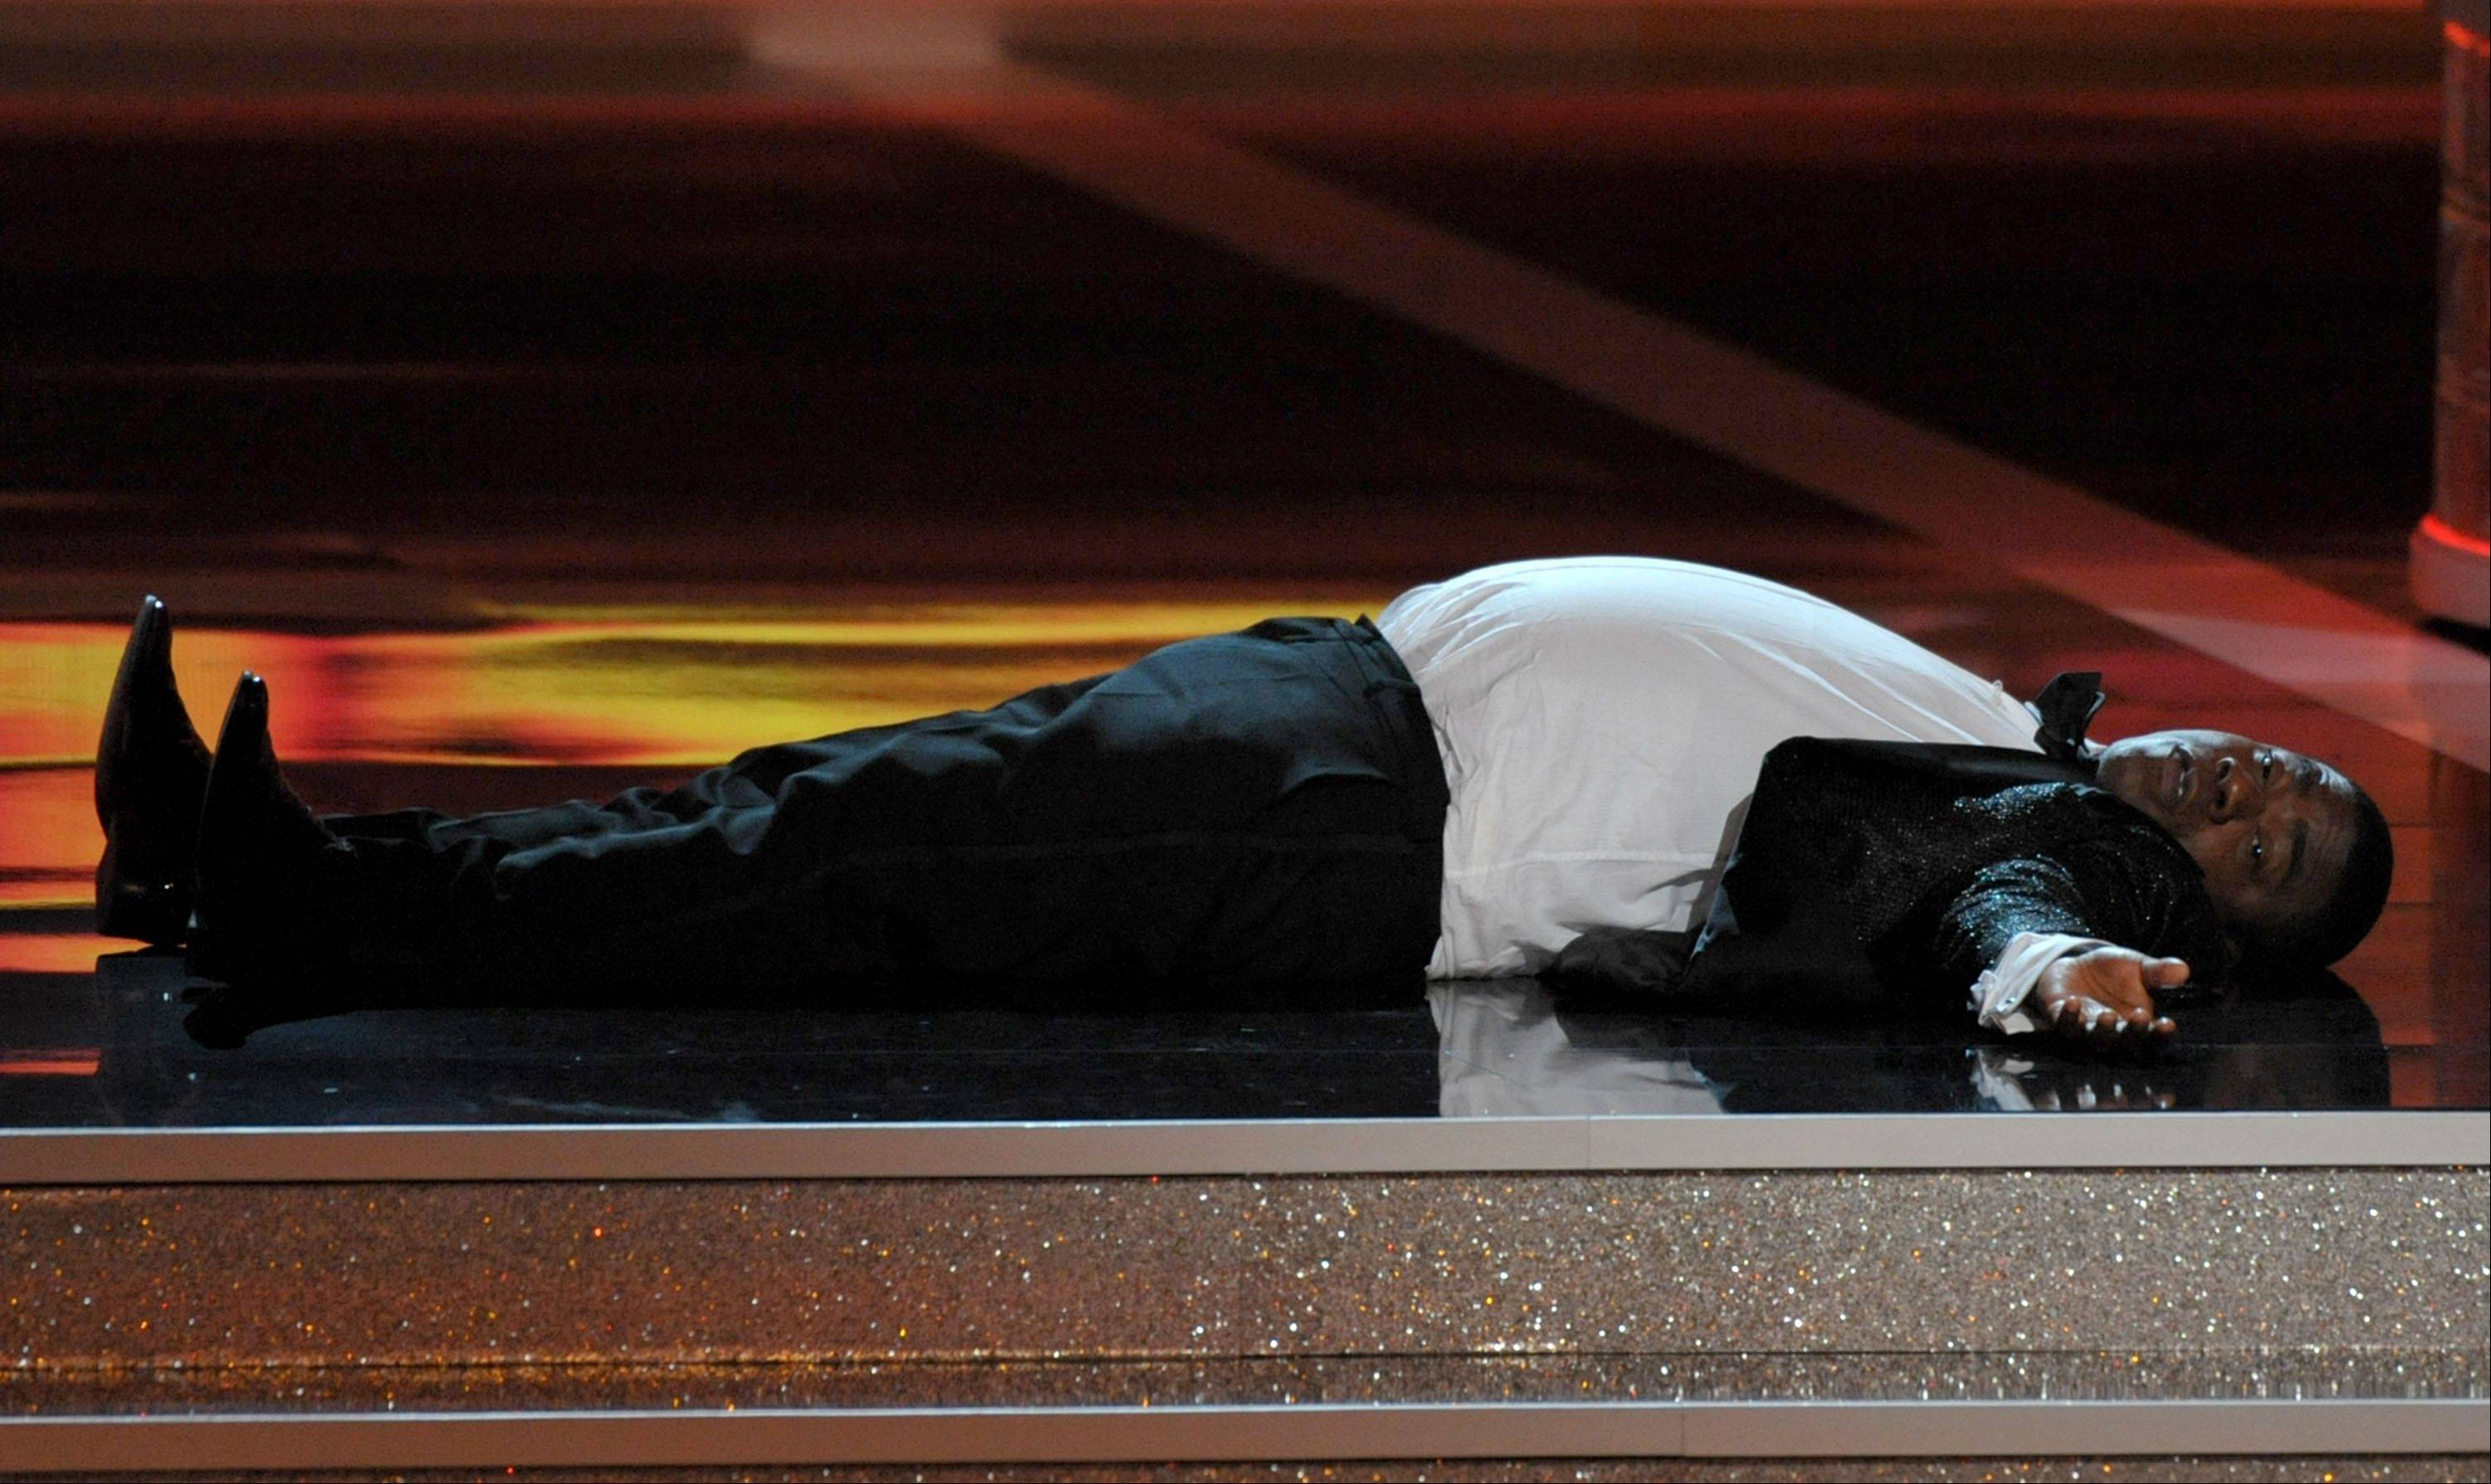 """30 Rock"" starTracy Morgan performs onstage at the 64th Primetime Emmy Awards."